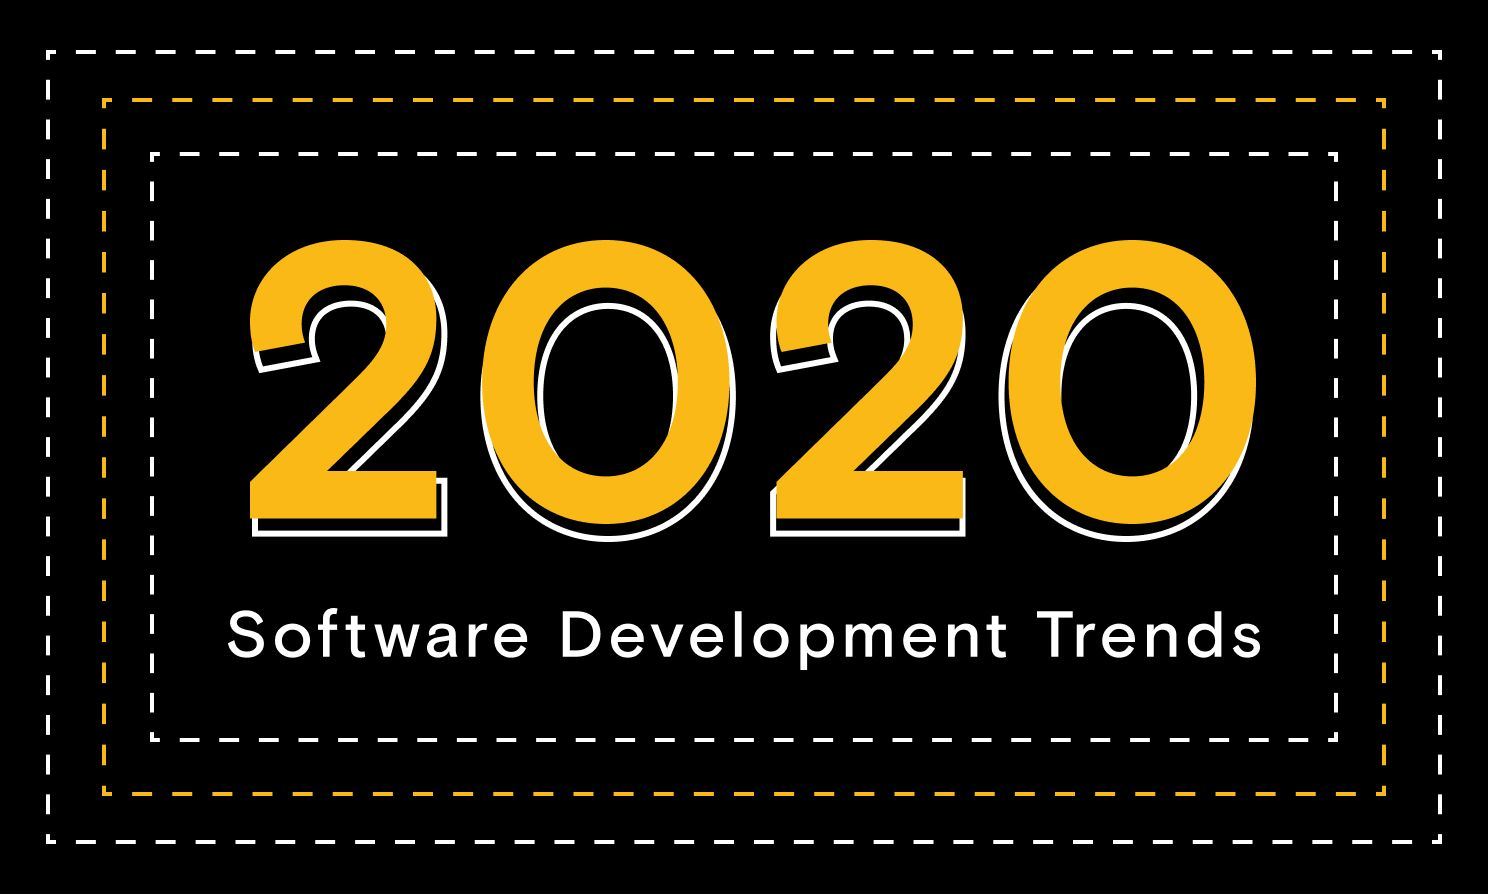 Top Software Development Trends 2020